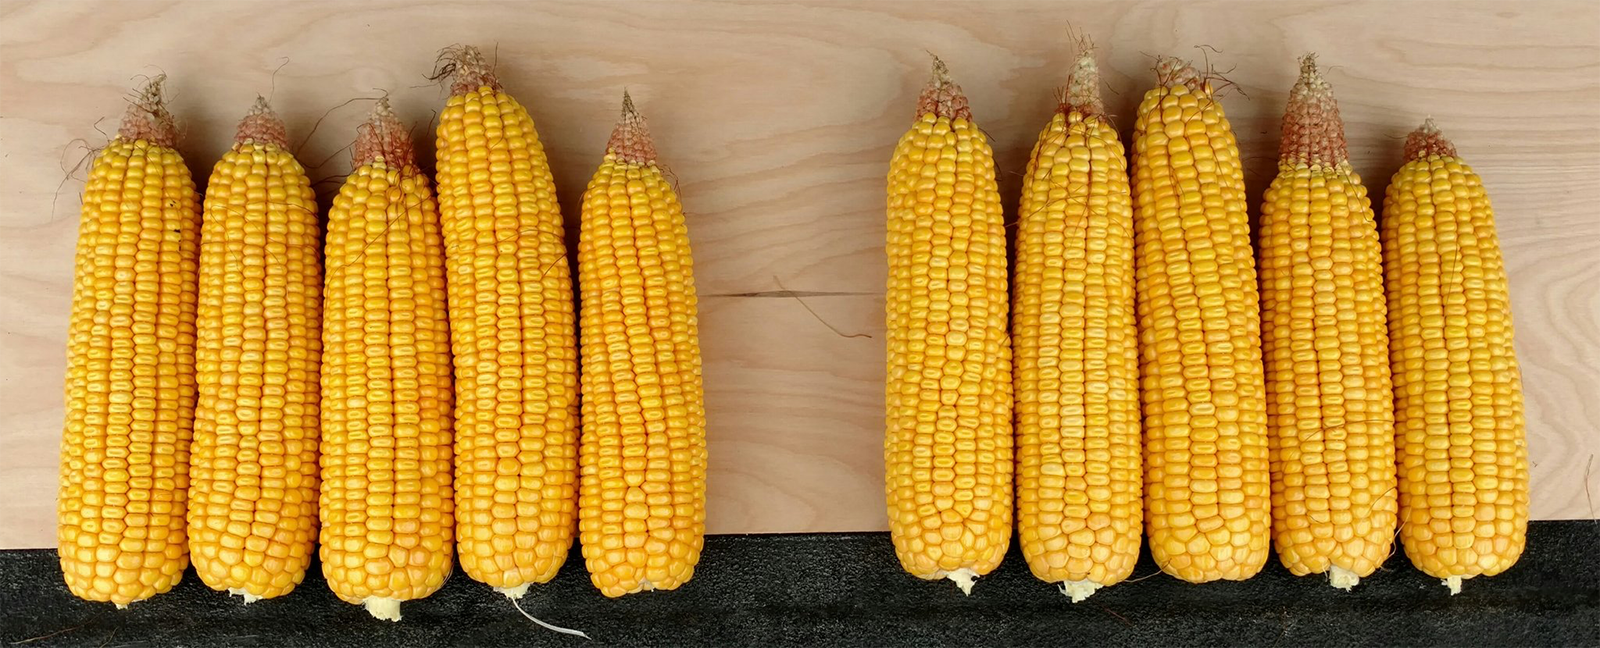 Variation in kernel setting in corn in Iowa, one of 10 Corn Belt states for which corn growing conditions and potential yield were modeled by the Yield Forecasting Center (Photo by Mark Licht)